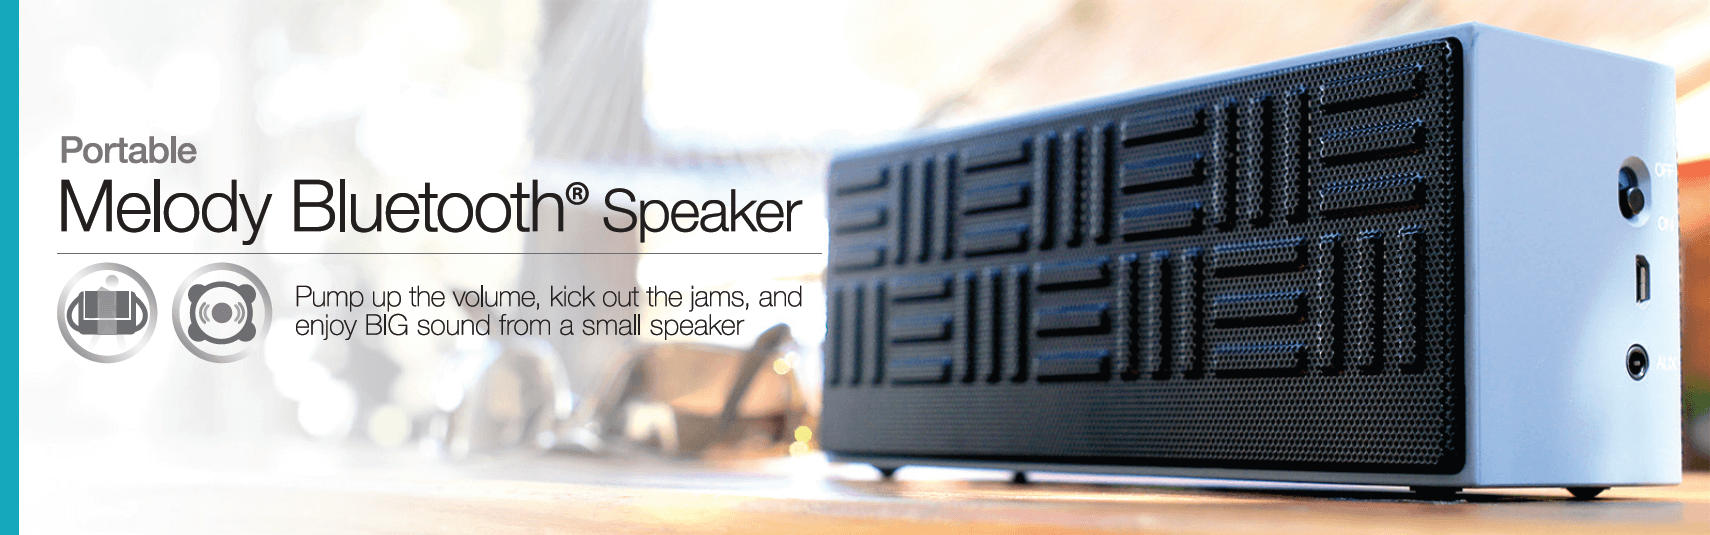 Melody Bluetooth Speaker